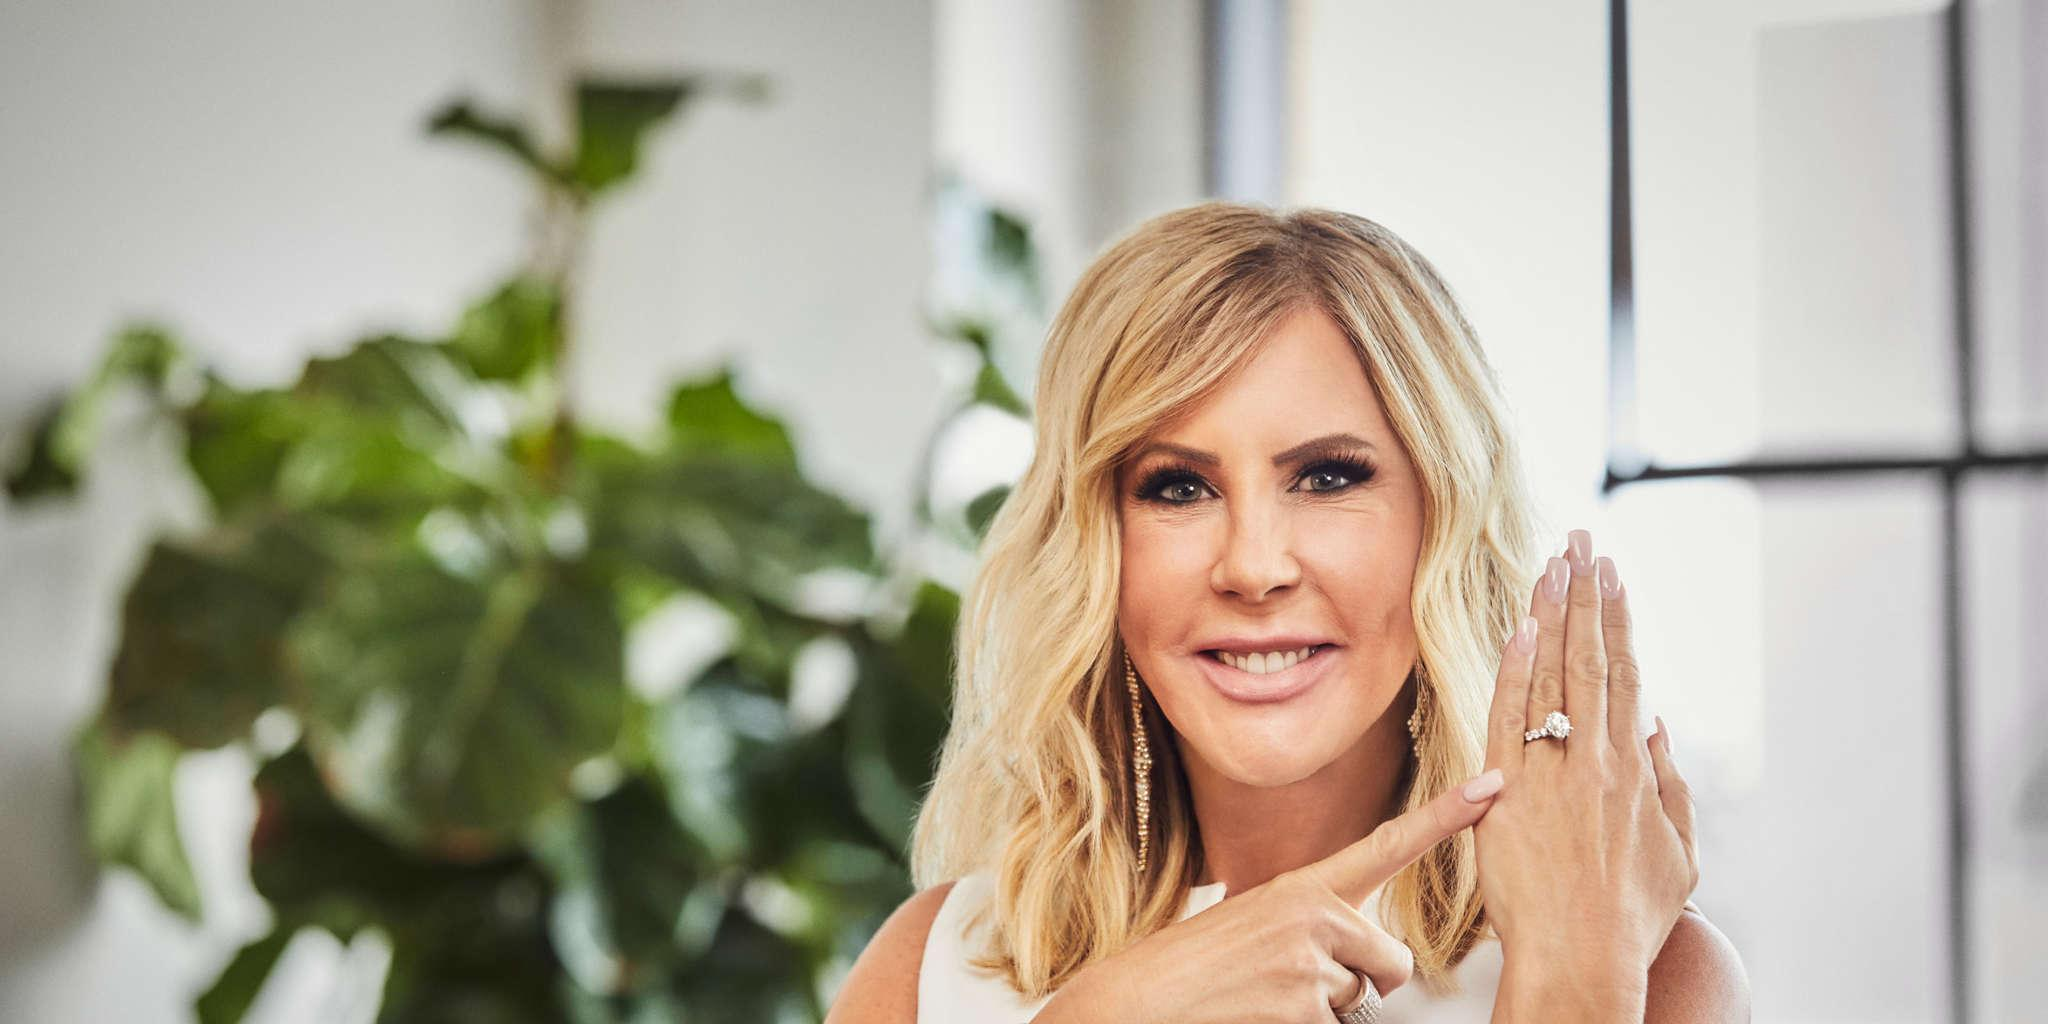 RHOC: Vicki Gunvalson Out -- Andy Cohen Reacts To Her Departure